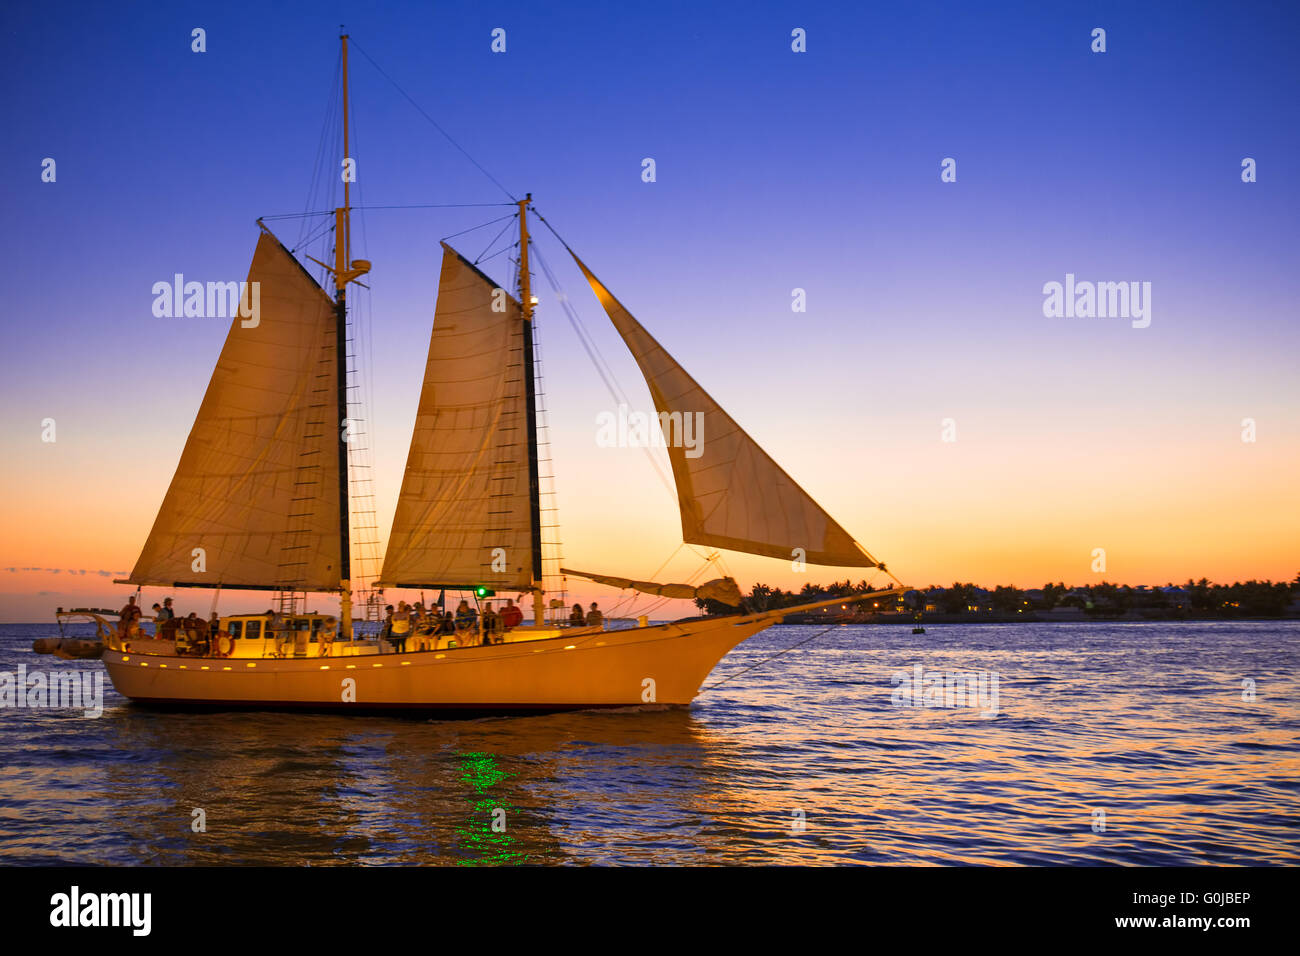 Beautiful sailboat at sunset seen from Key West Florida - Stock Image